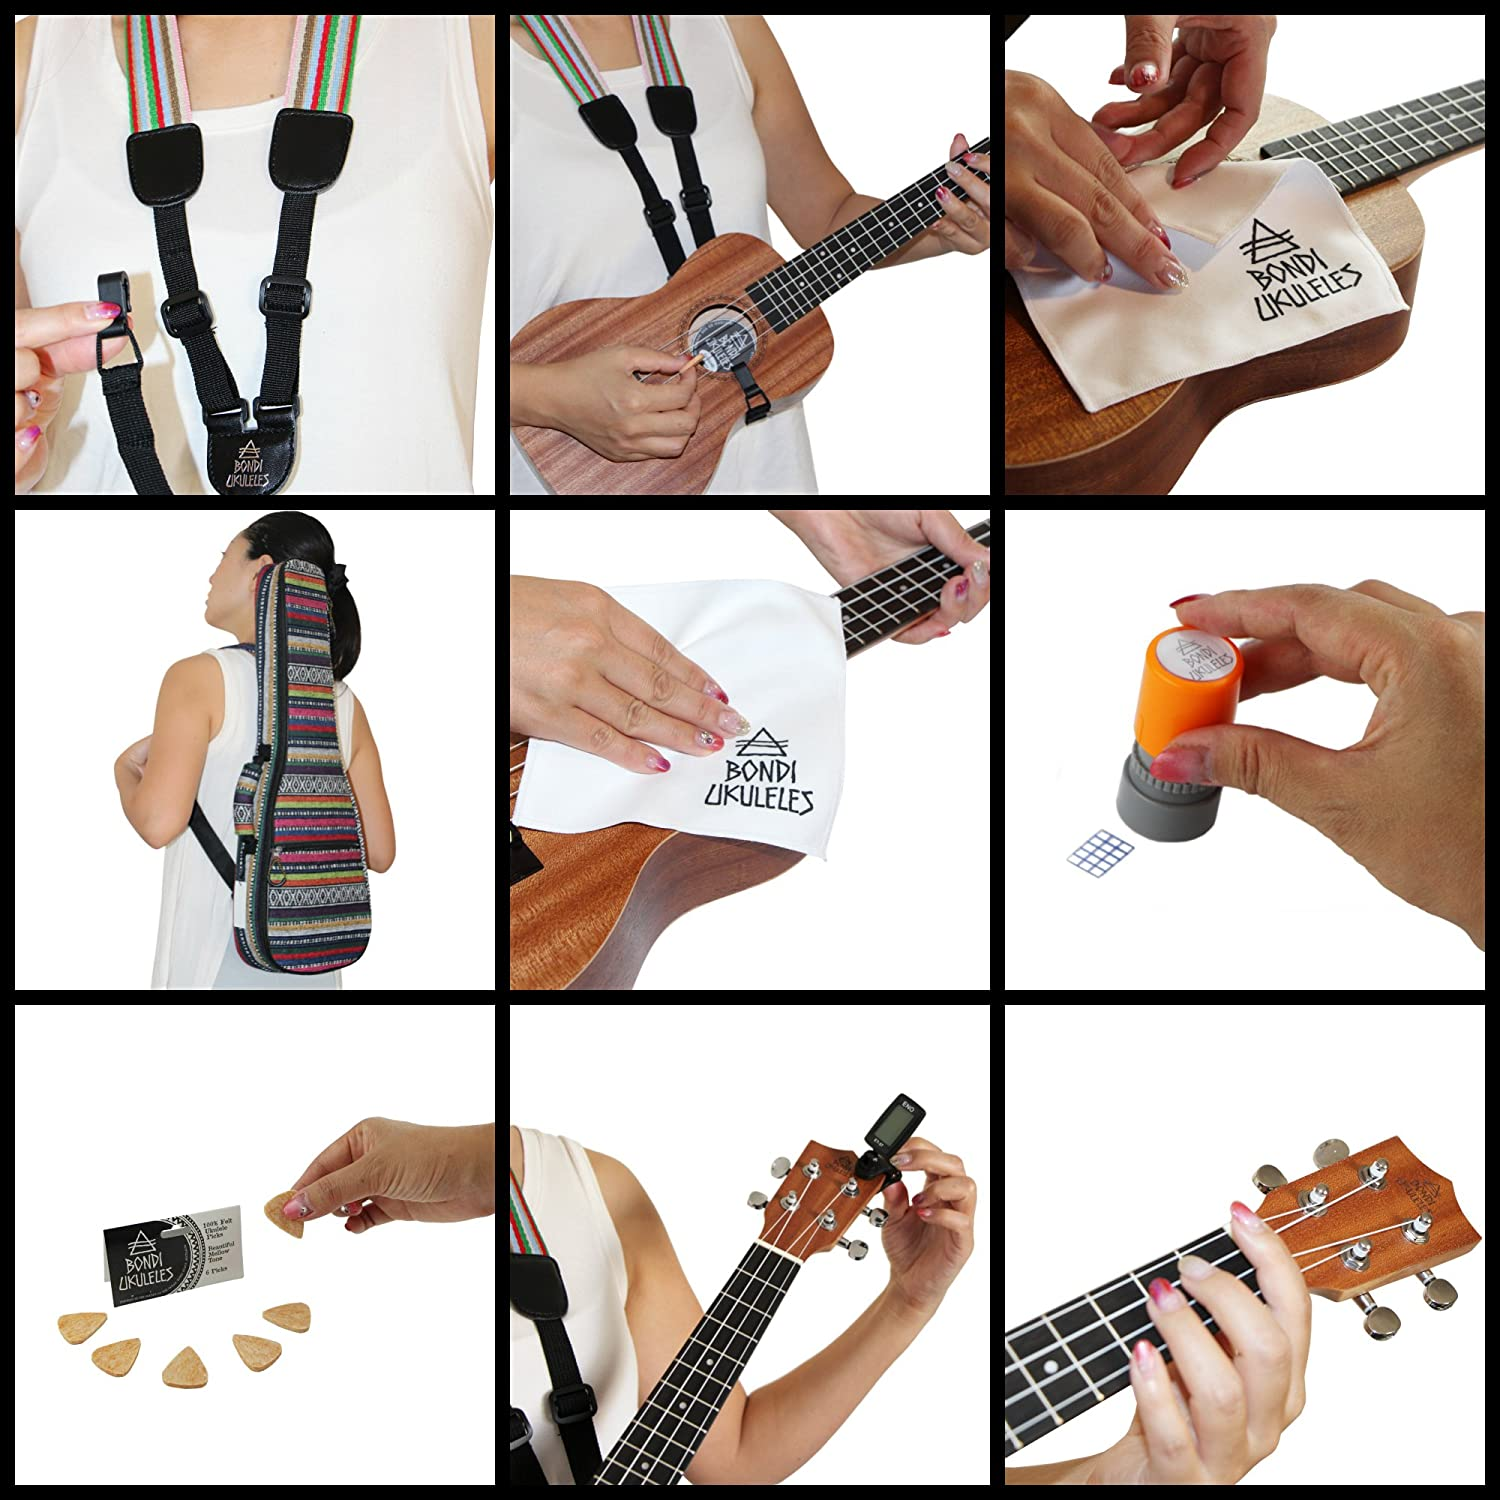 Ukulele Starter Kit 15 Free Bonuses Mahogany Uke Compression About How To Easily Read Chord Diagrams Or Often Called Stamps Sponge Case Aquila Strings Felt Picks Tuner Stamp Chart